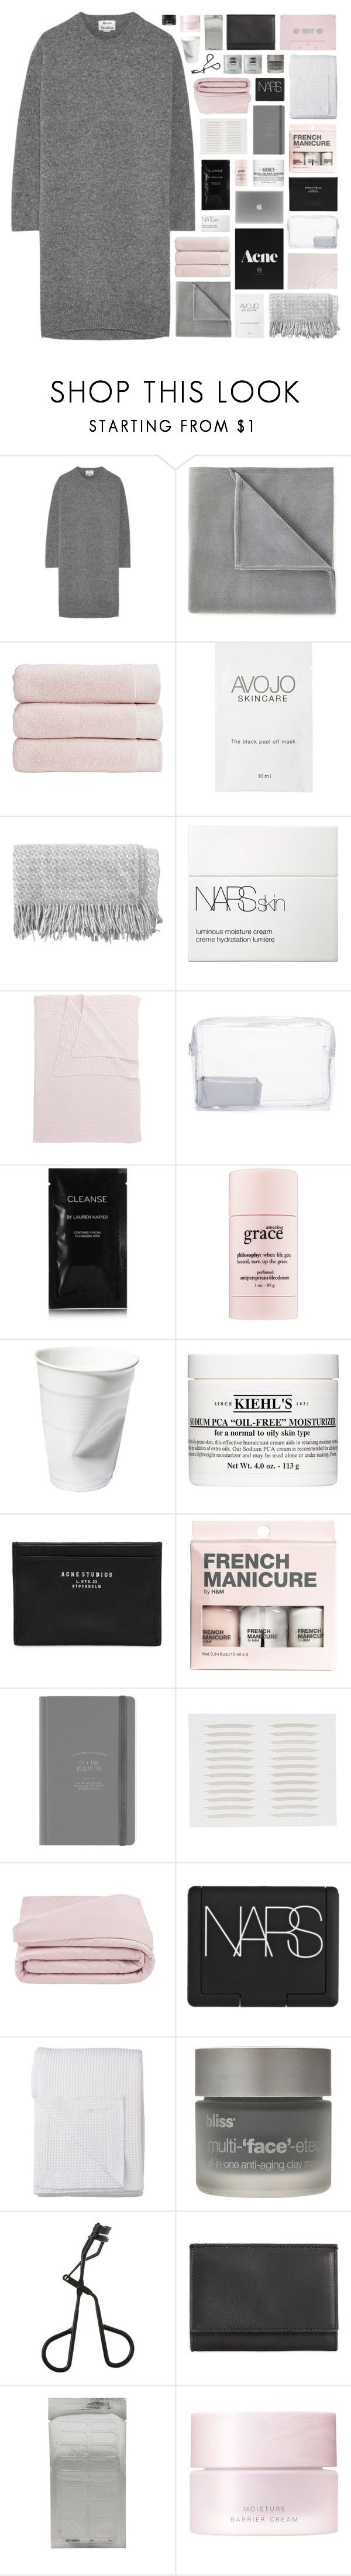 """""""- send me your location, let's ride the vibrations"""" by p-ureness ❤ liked on Polyvore featuring Acne Studios, Vellux, Christy, canvas, NARS Cosmetics, Tartine et Chocolat, Topshop, Cleanse by Lauren Napier, philosophy and Kiehl's"""